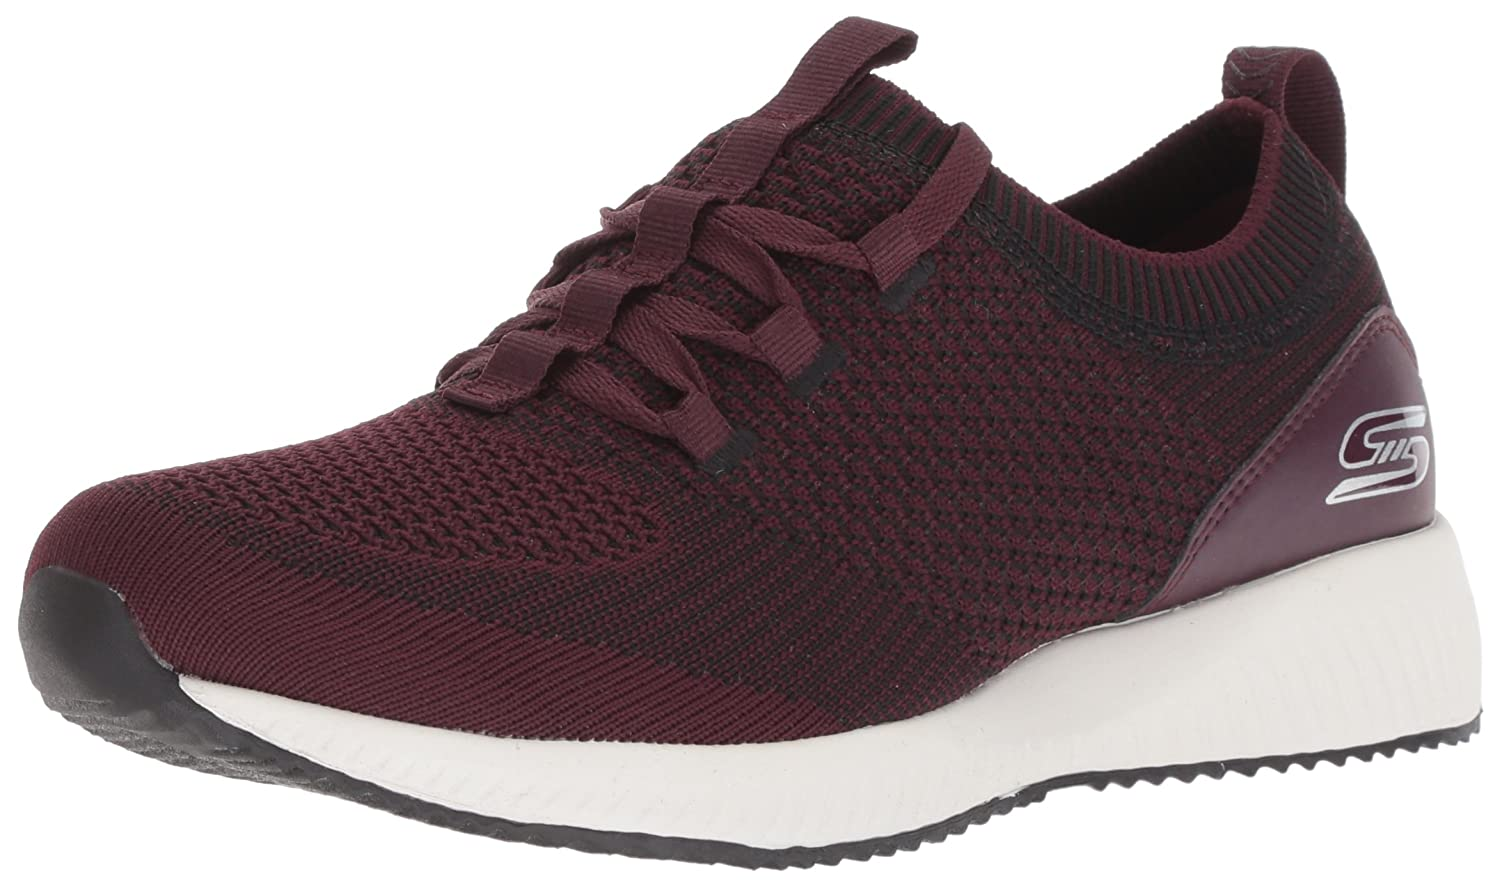 Bobs Squad-Alpha Gal Sneakers at Amazon